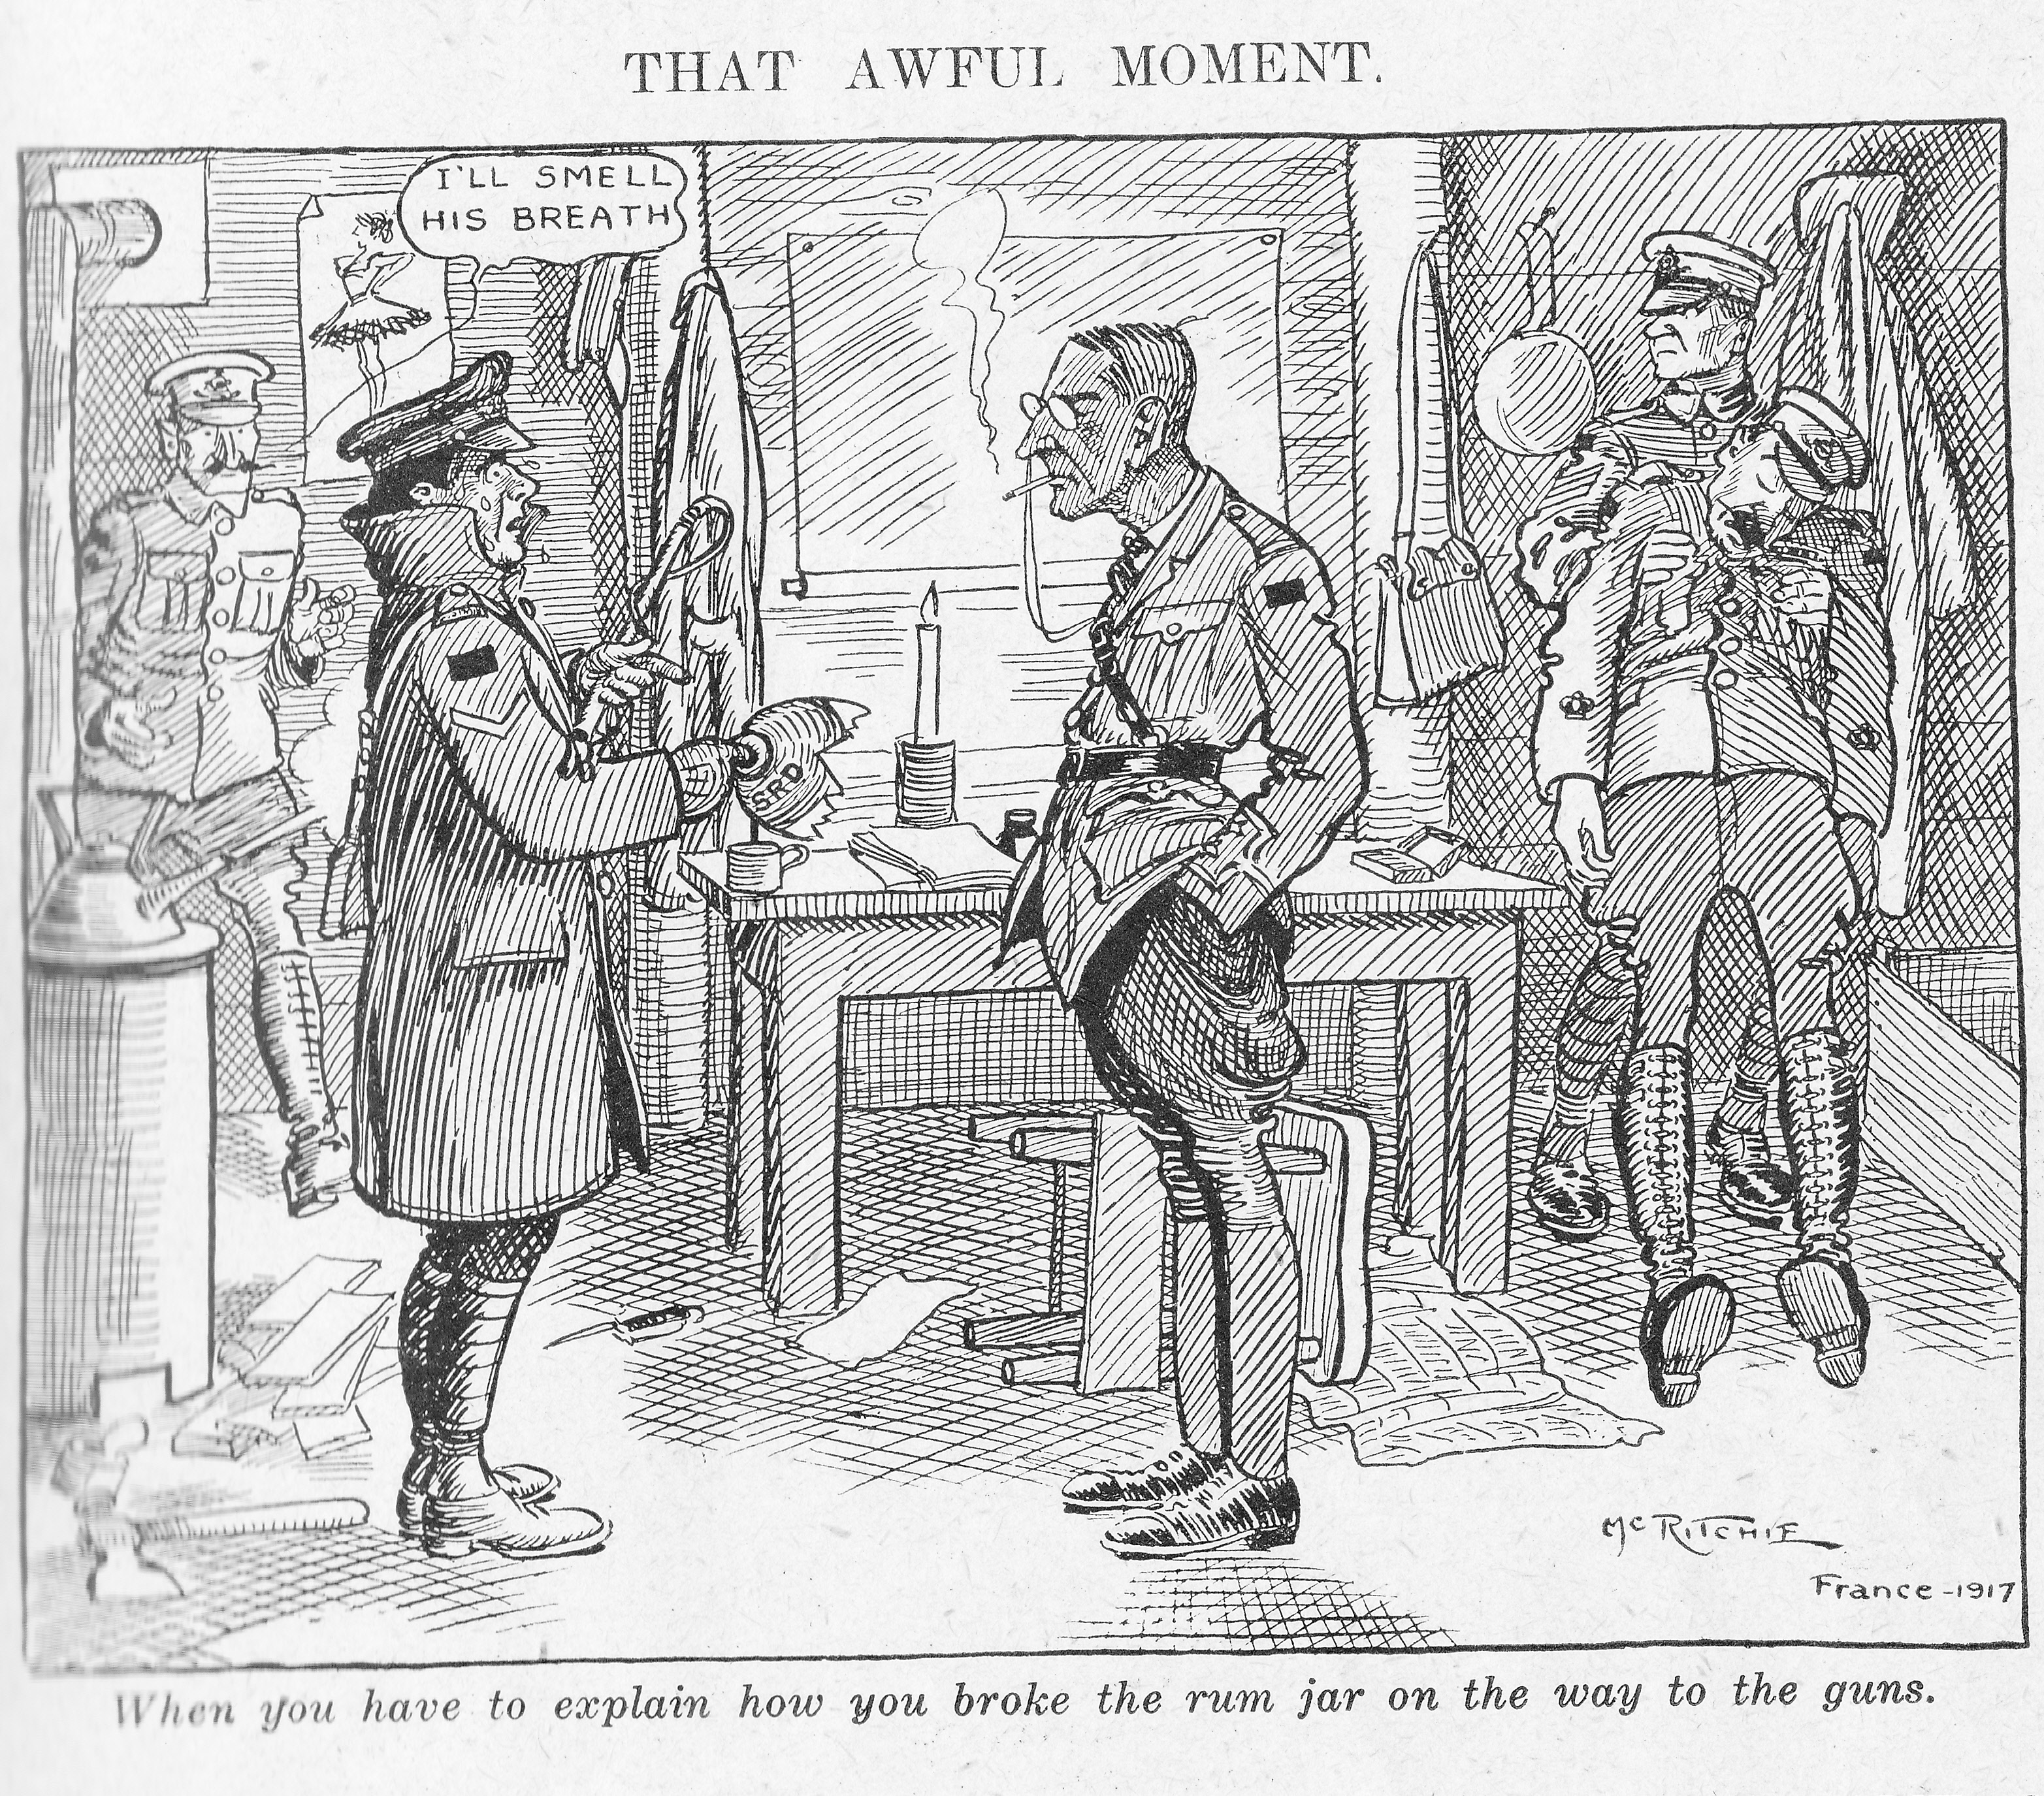 C:\Users\Robert\Documents\CARTOONING ILLUSTRATION ANIMATION\IMAGE BY CARTOONIST\R\RITCHIE Donald, Maclean's Nov. 1917 29.jpg